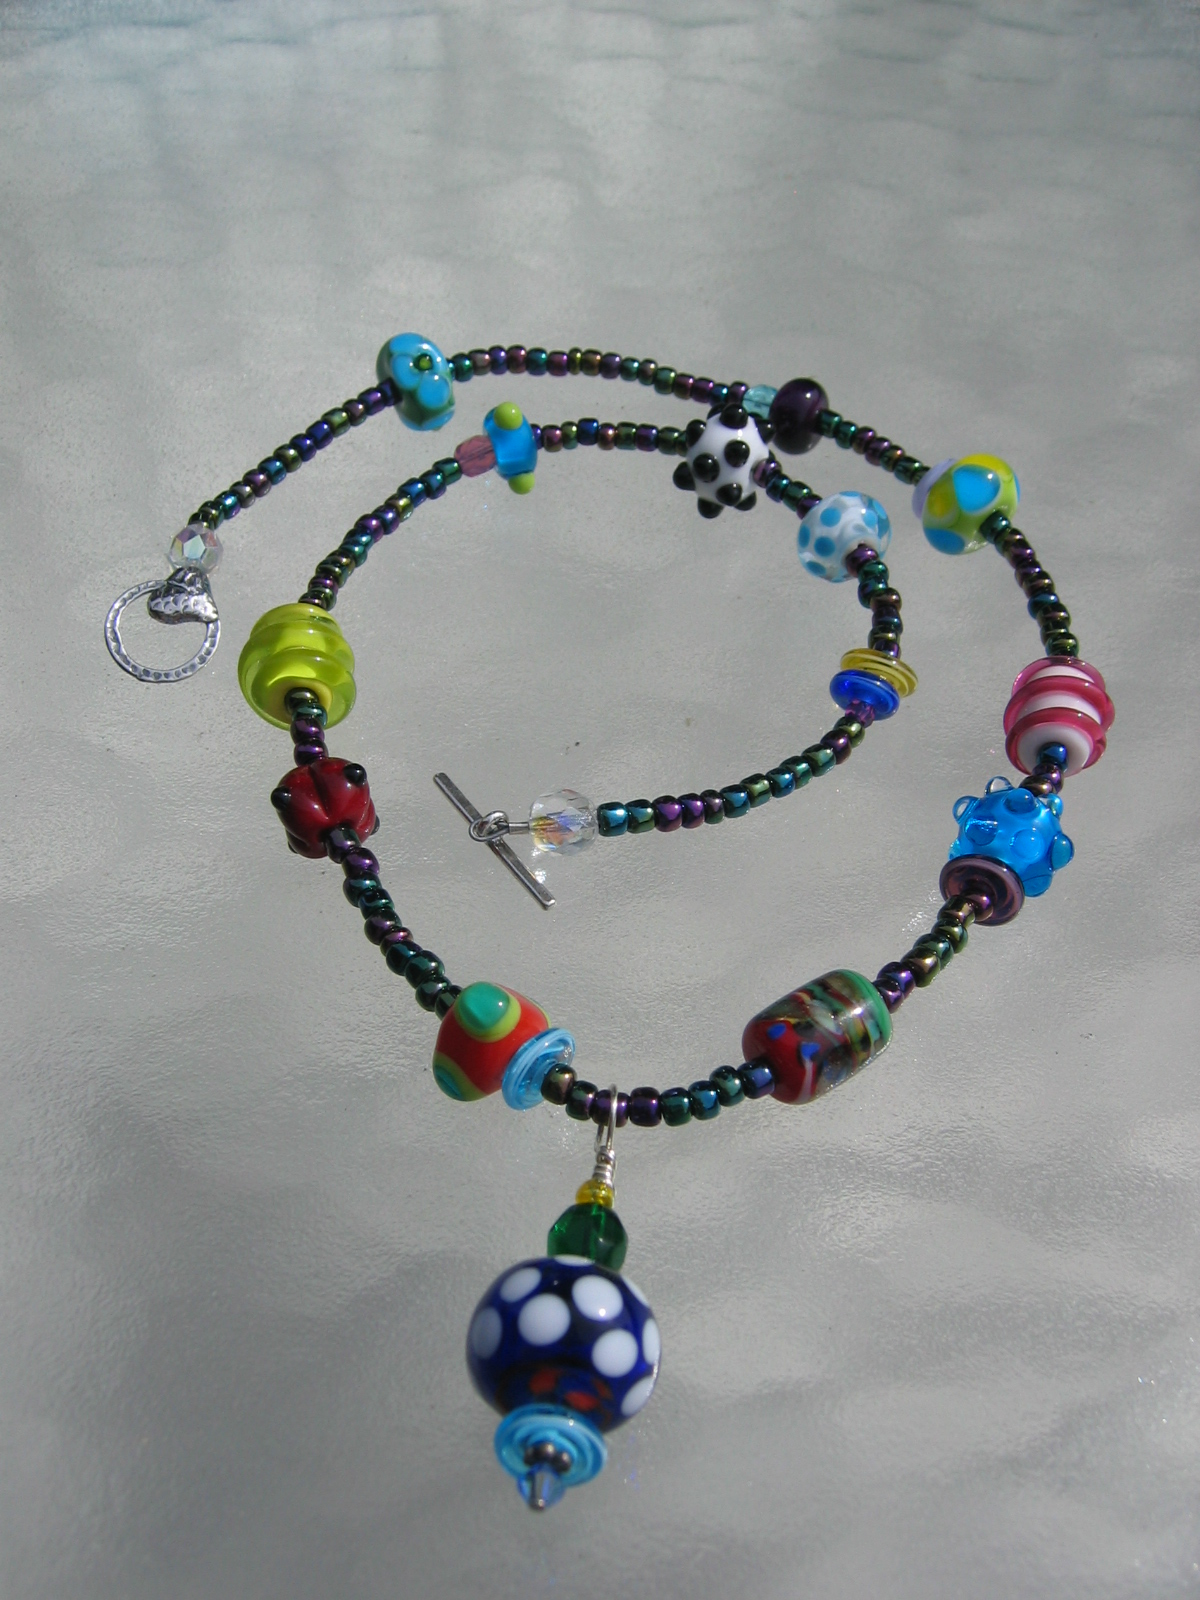 becky necklace bead-ball 032706 003